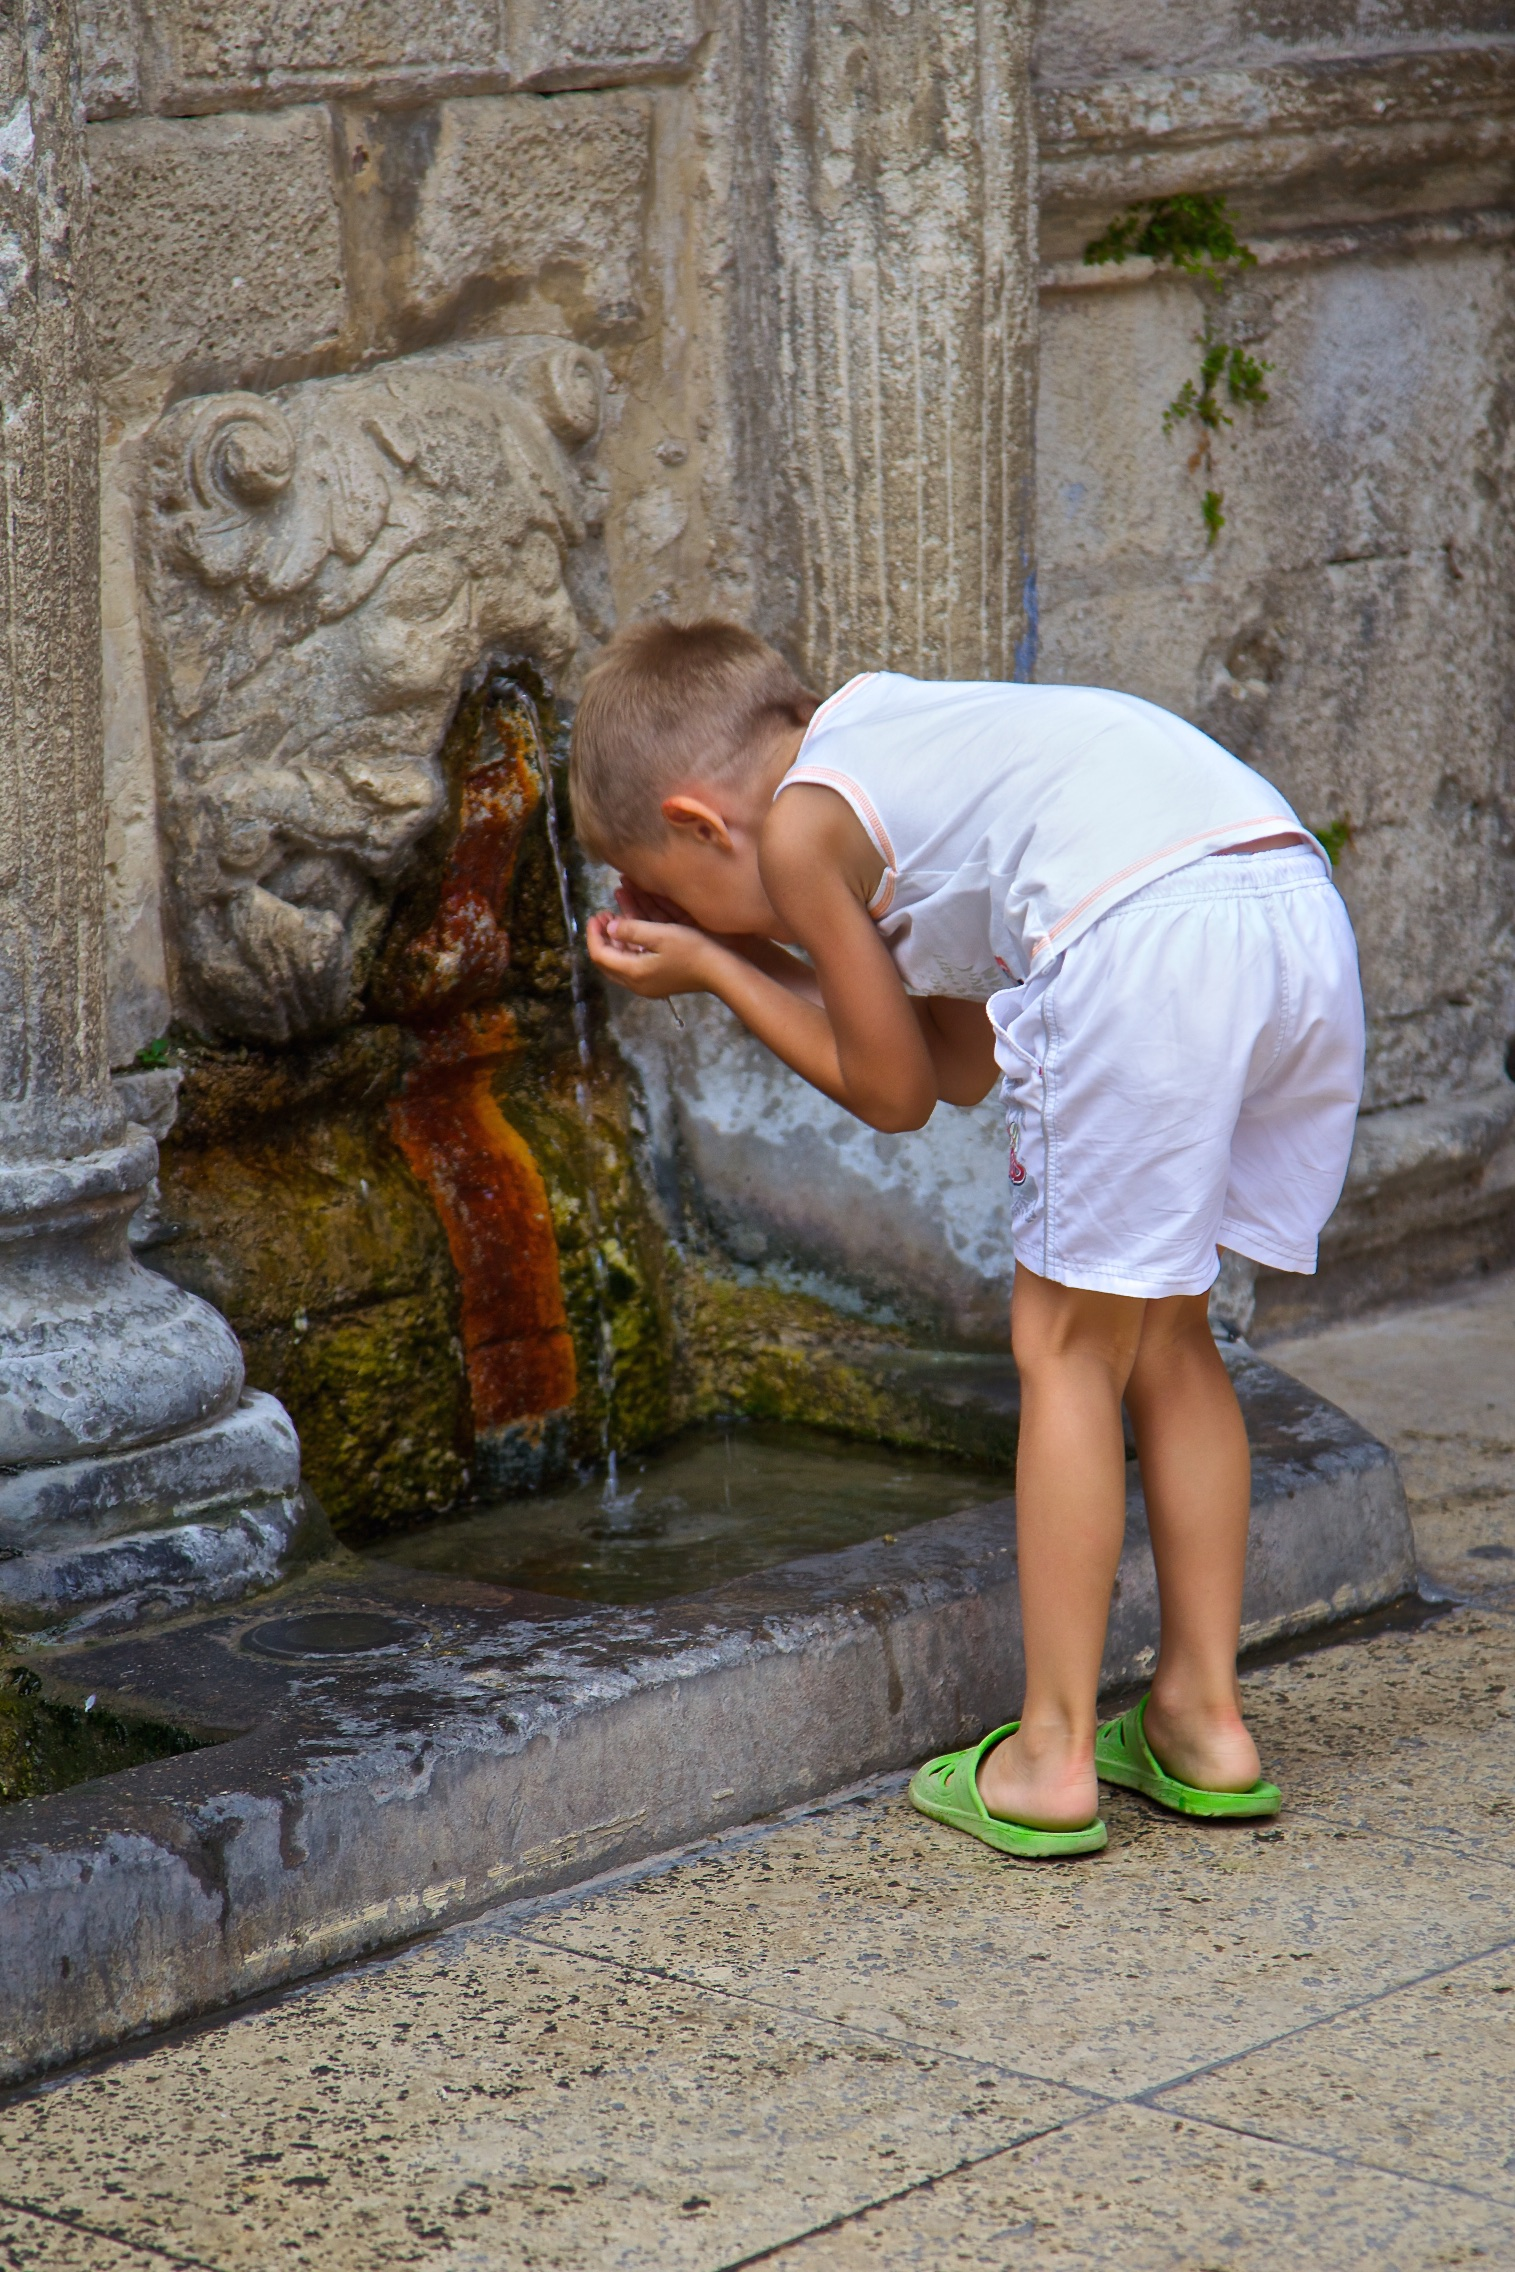 Drinking water from an ancient fountain. Crete, Greece